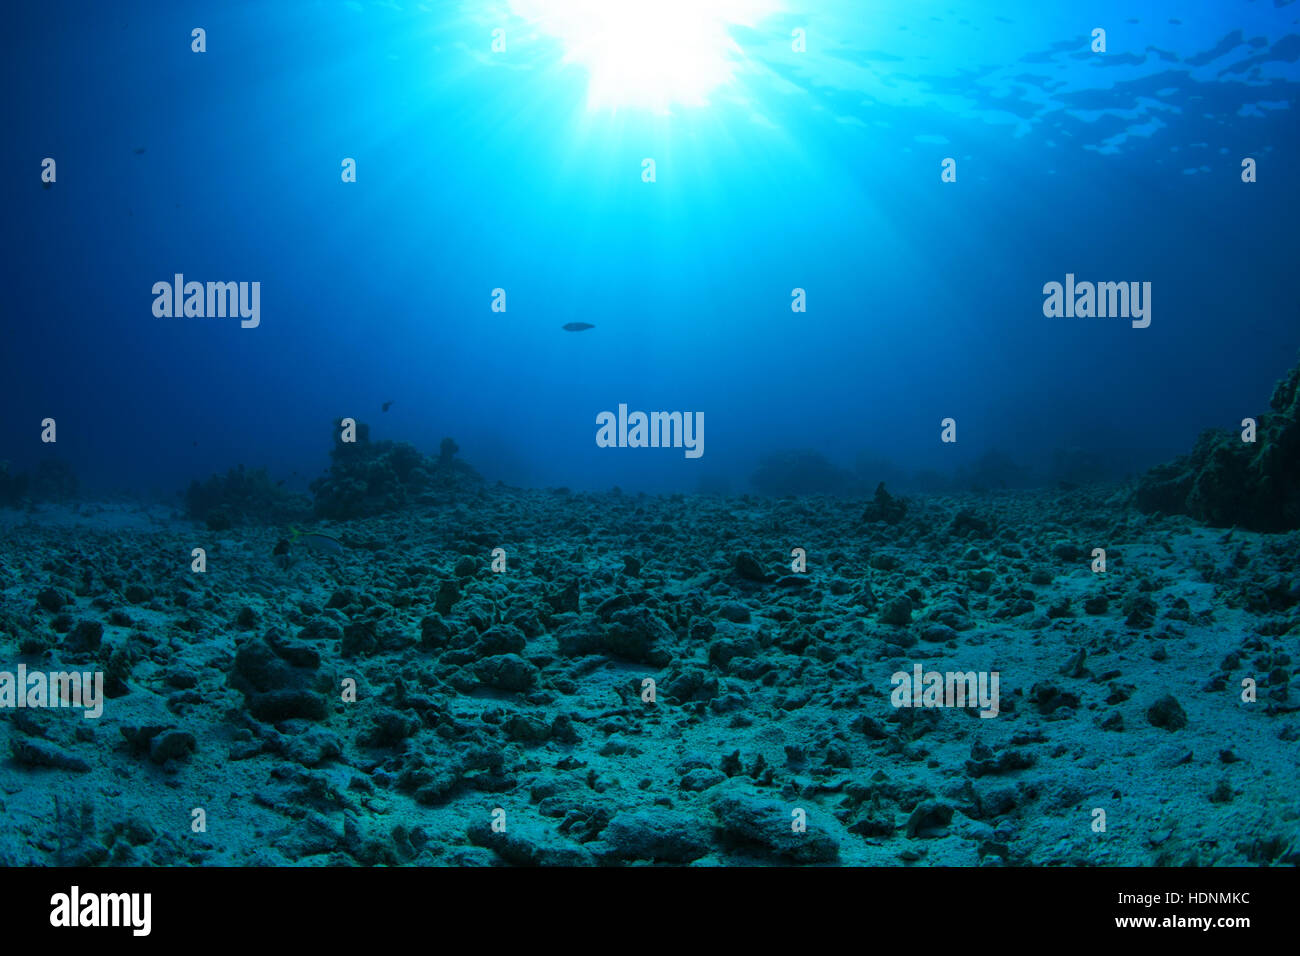 Damaged Coral Reef Stock Photos & Damaged Coral Reef Stock ...